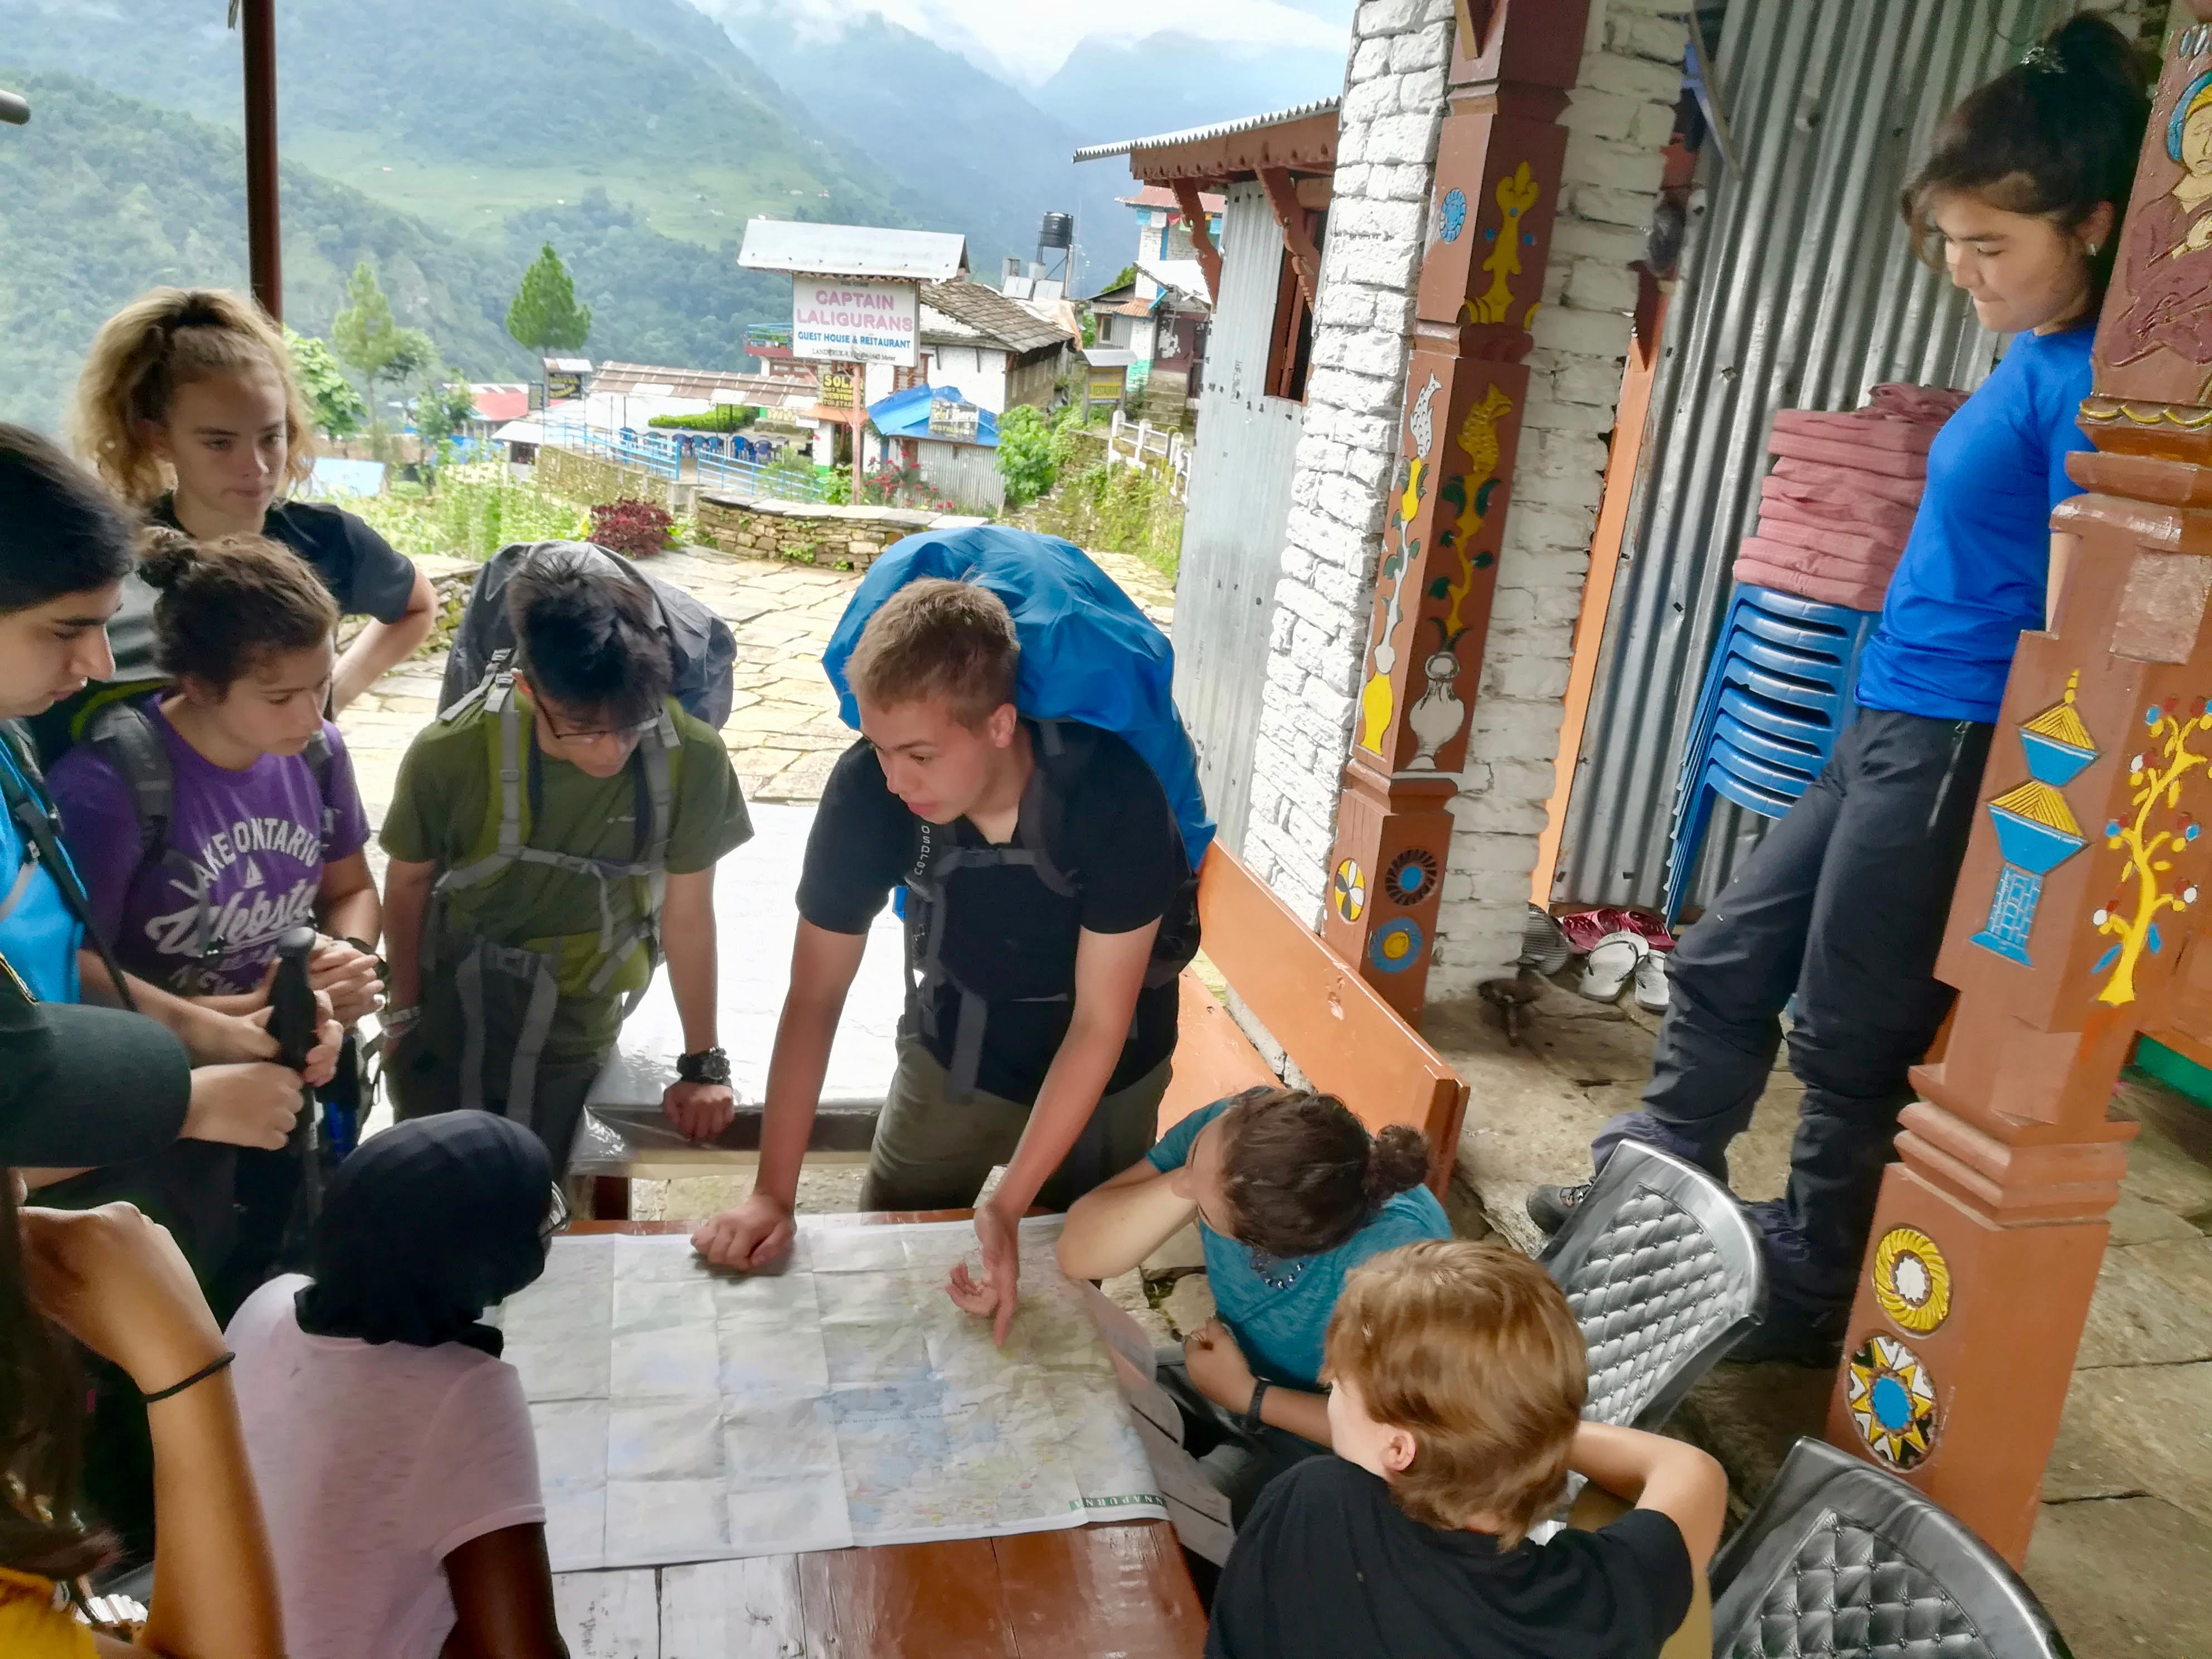 Summer Program - Multi-Sport | Global Routes: Nepal. The Roof of the World. Service and Cultural Immersion.